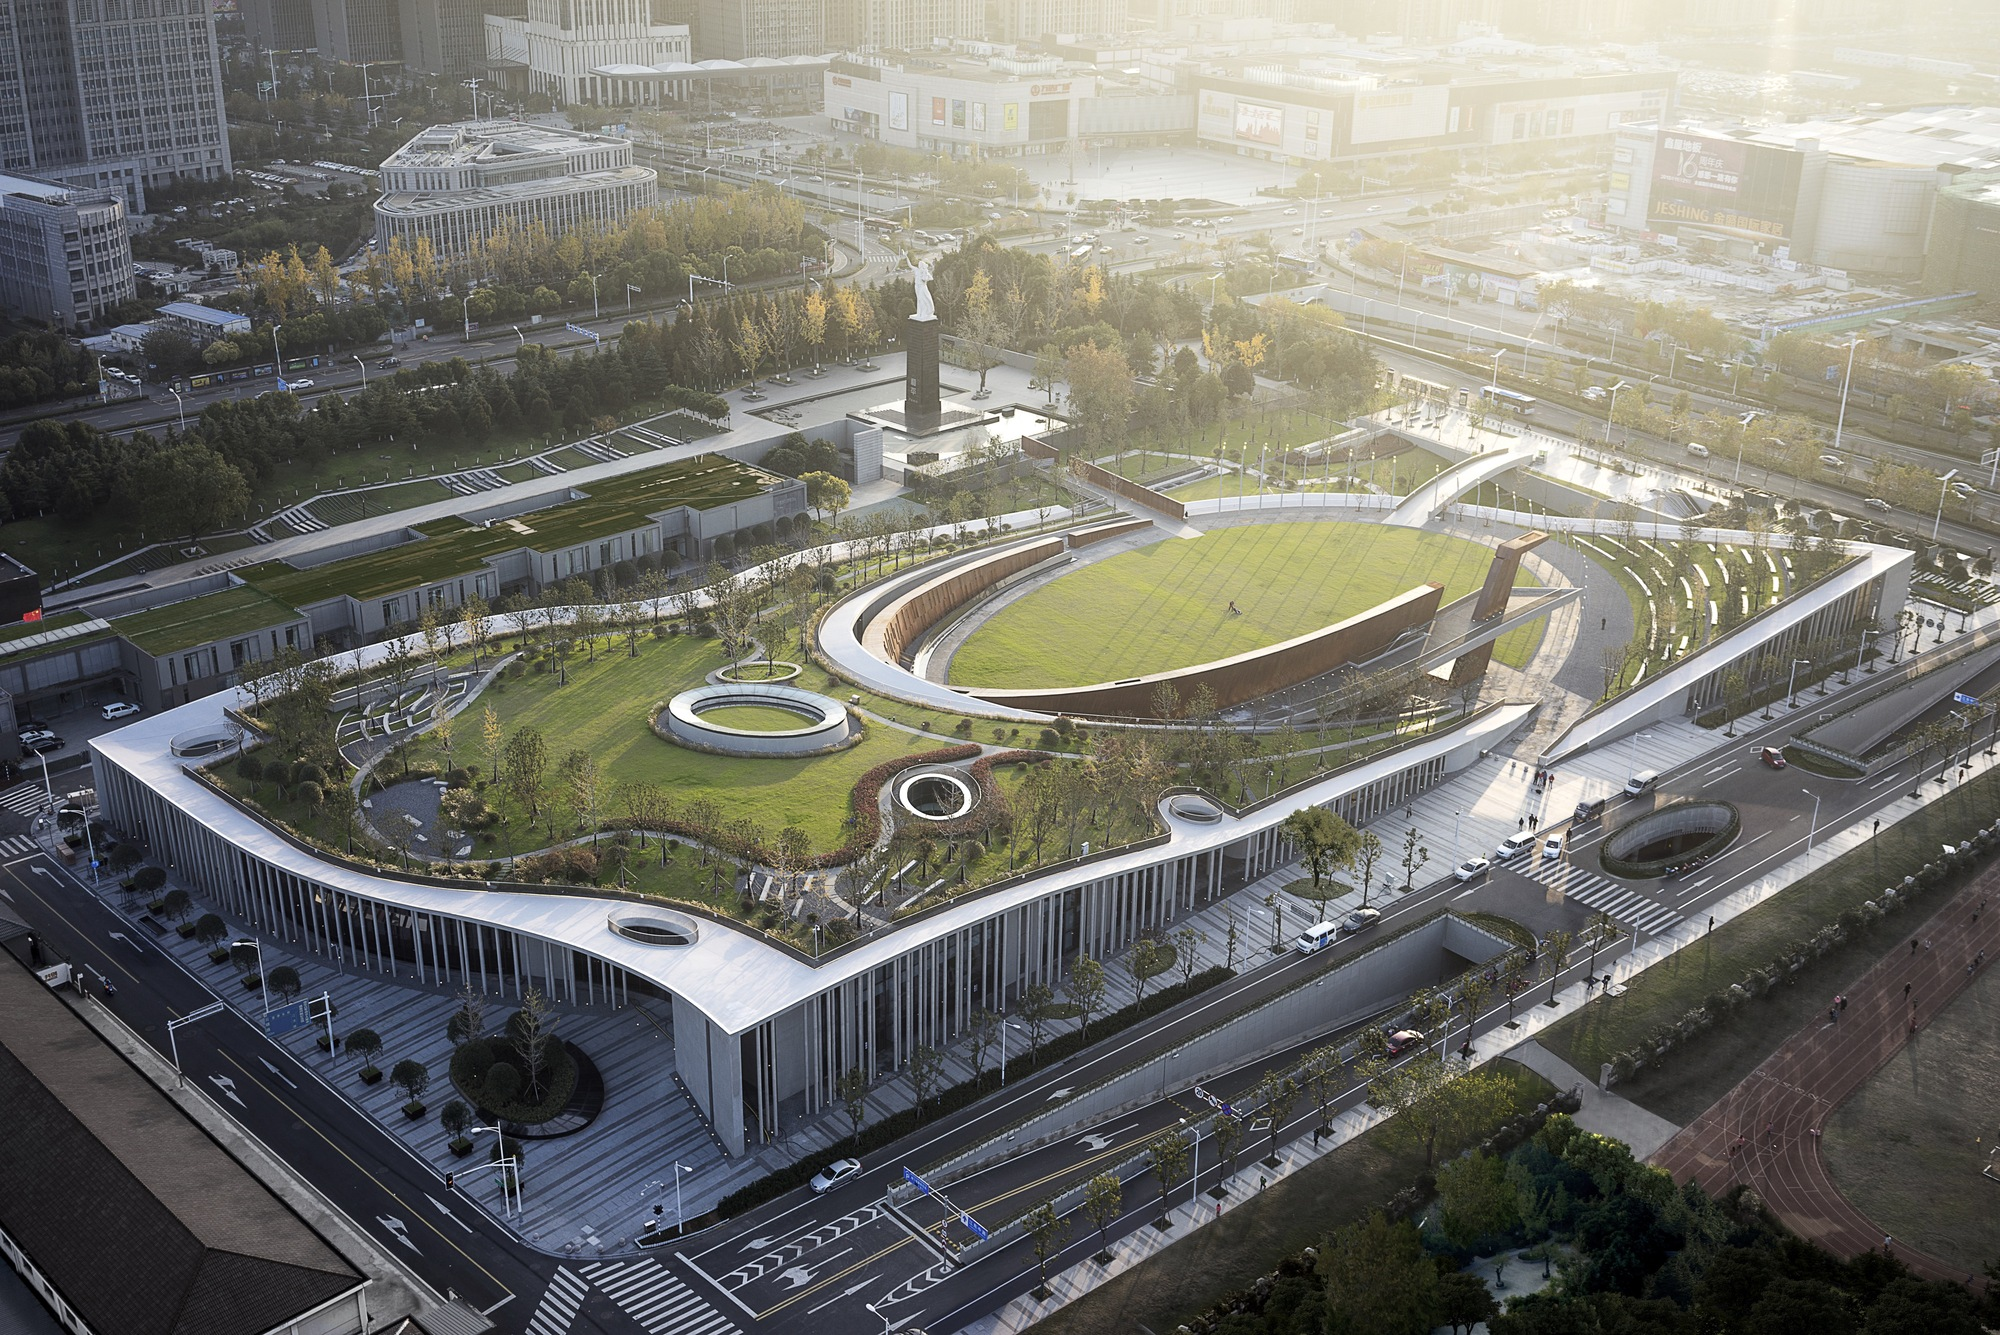 Victims Of Nanjing Massacre Memorial Hall / Architectural Design U0026 Research  Institute Of South China University